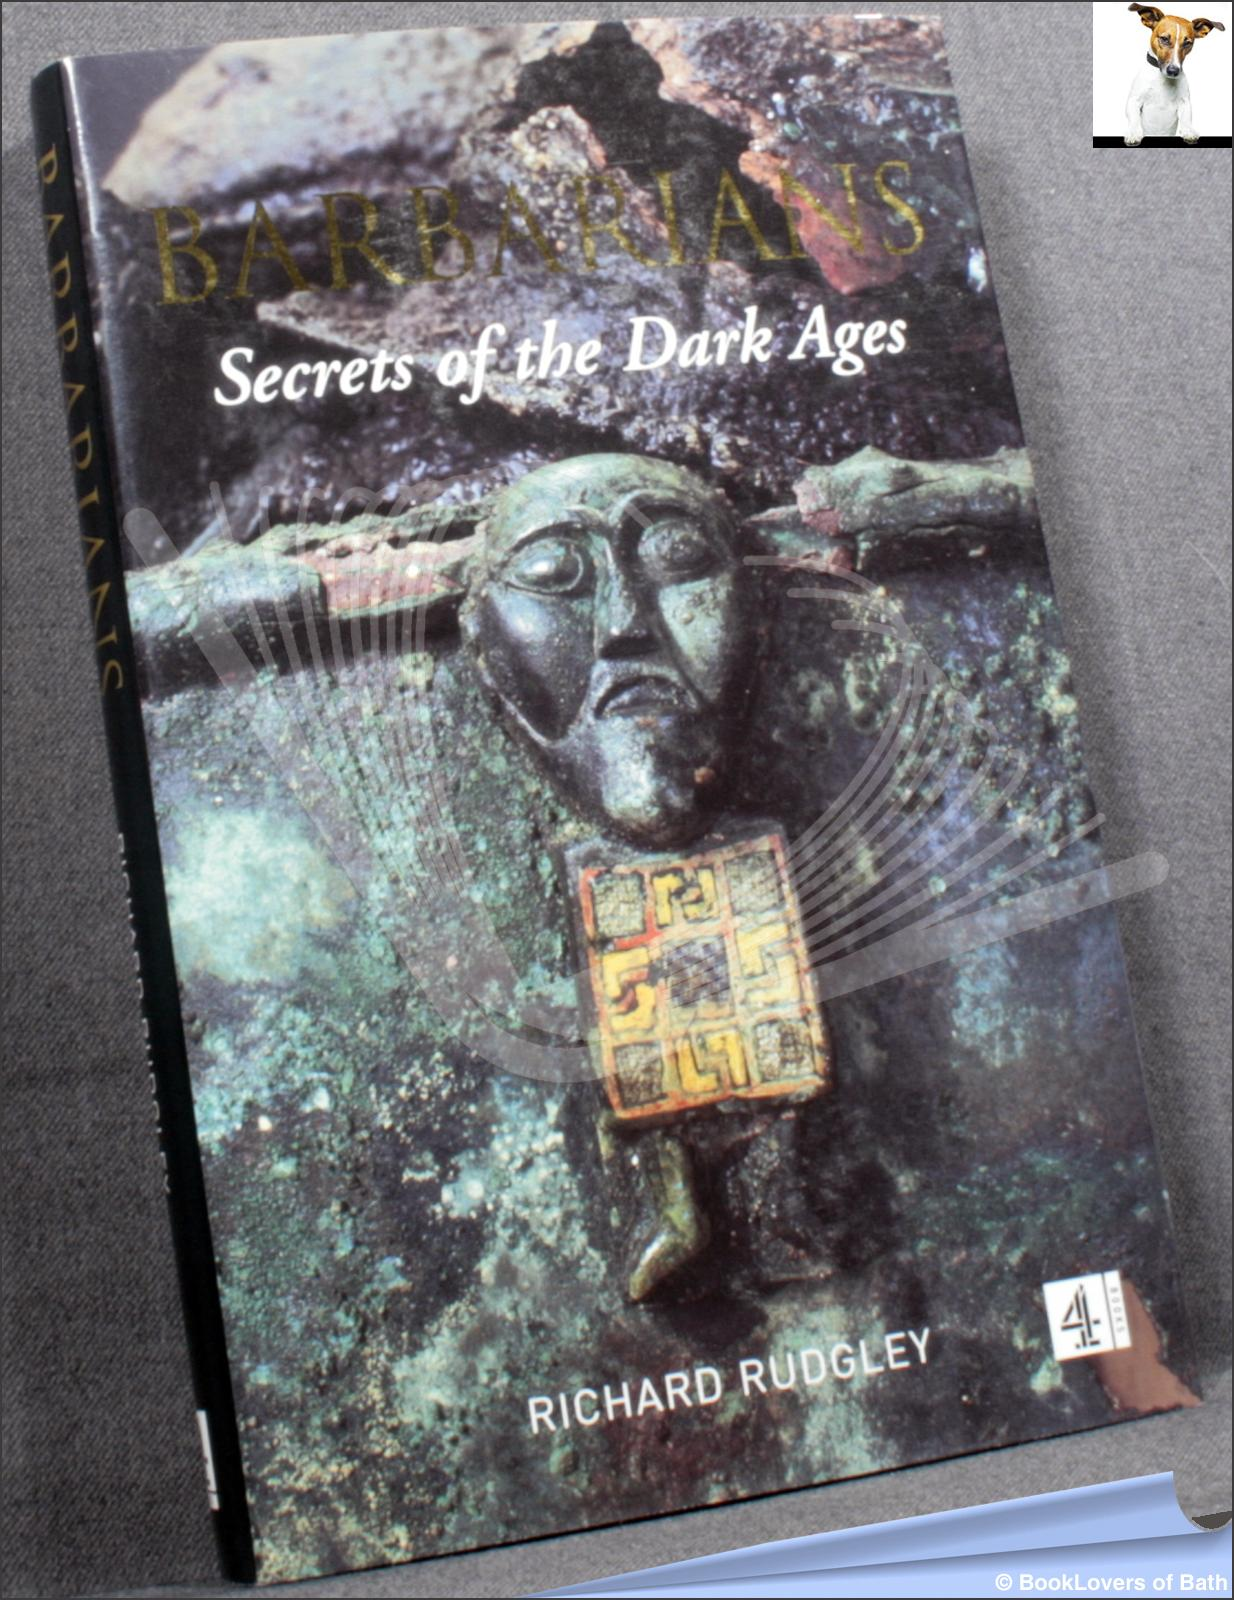 Barbarians: Secrets of the Dark Ages - Richard Rudgley